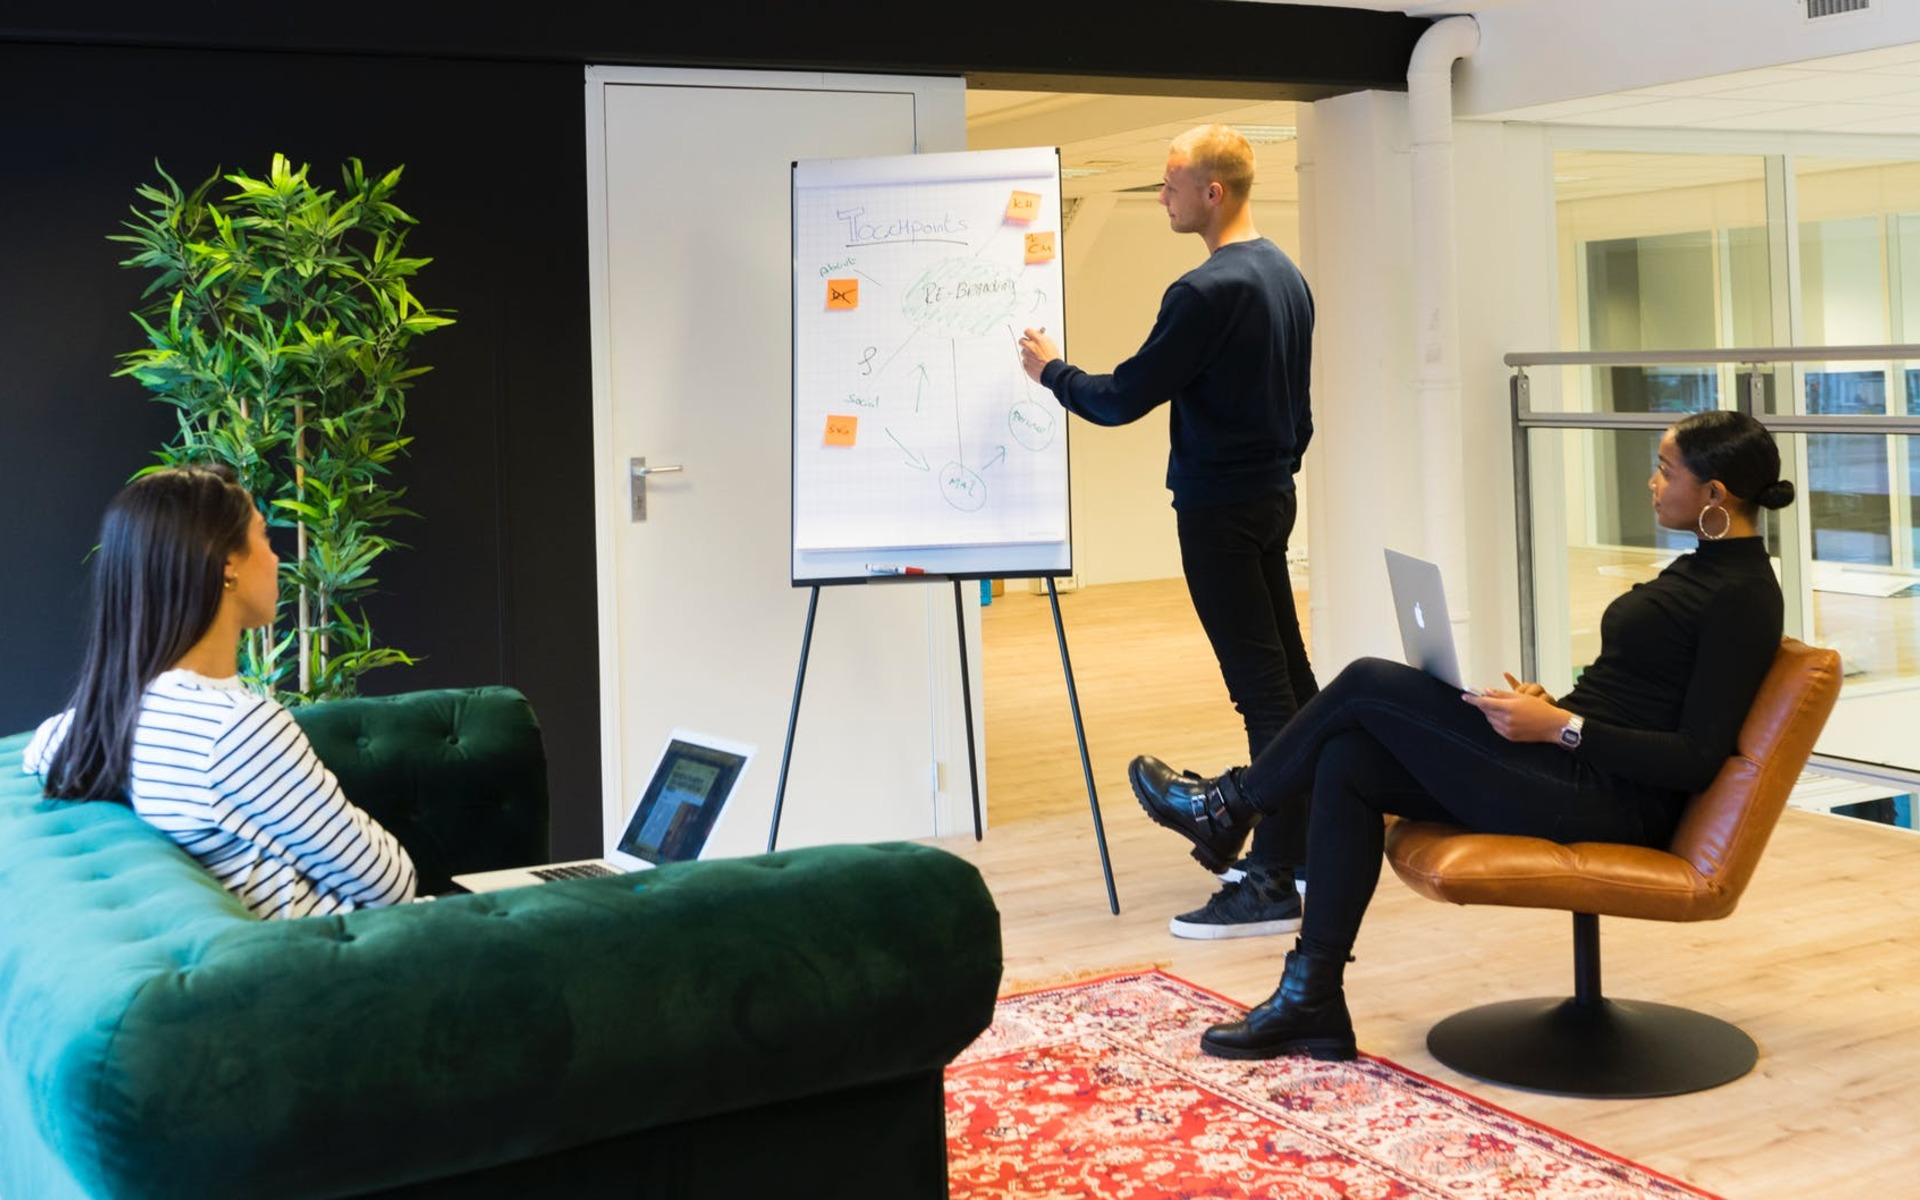 Man standing in front of a whiteboard talking to two women